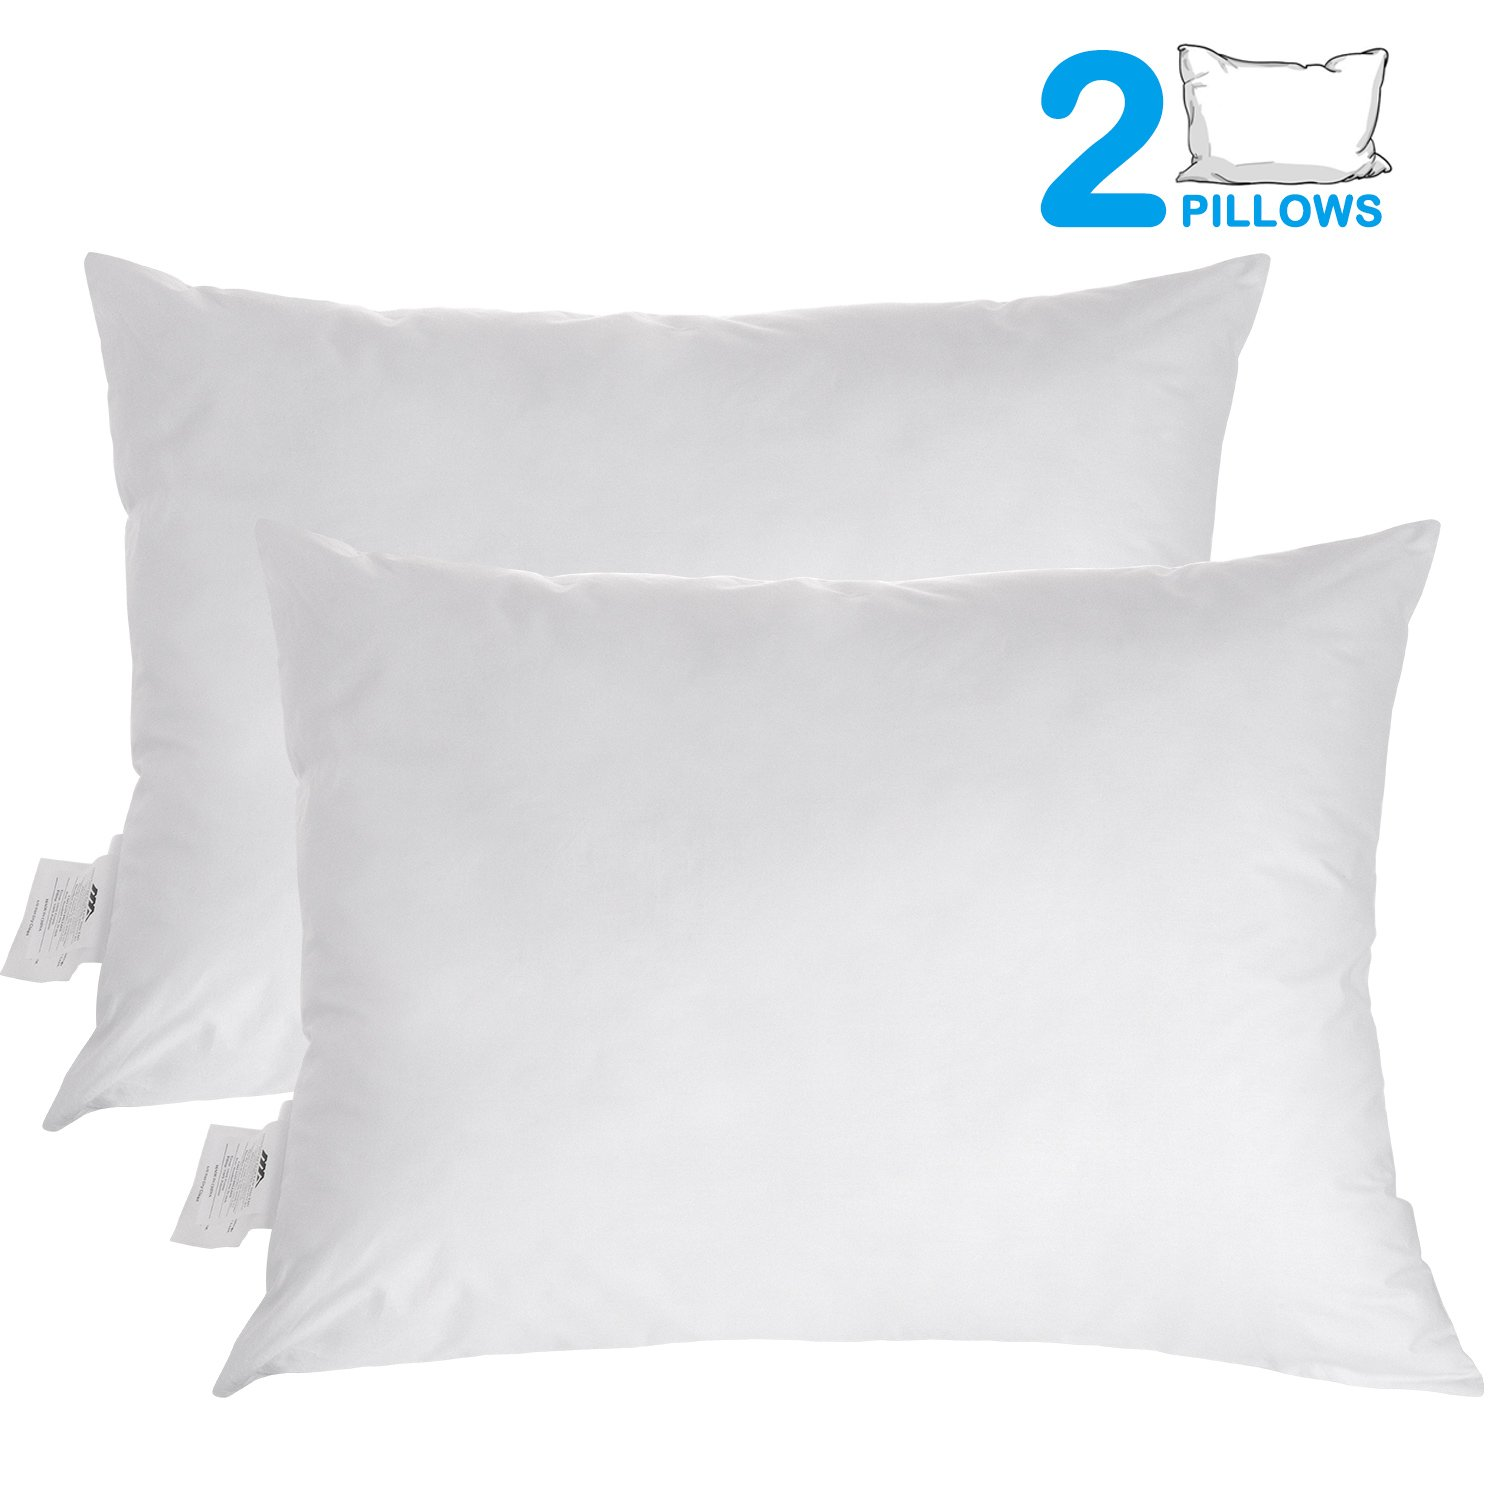 Benewell Pillow for Sleeping, 100% Cotton and Super Soft Plush Fiber Fill,Hypoallergenic & Dust Mite Resistant, Five-Star Hotel Collection Bedding Pillows,Standard/King 20''x 36''(2 Pack)